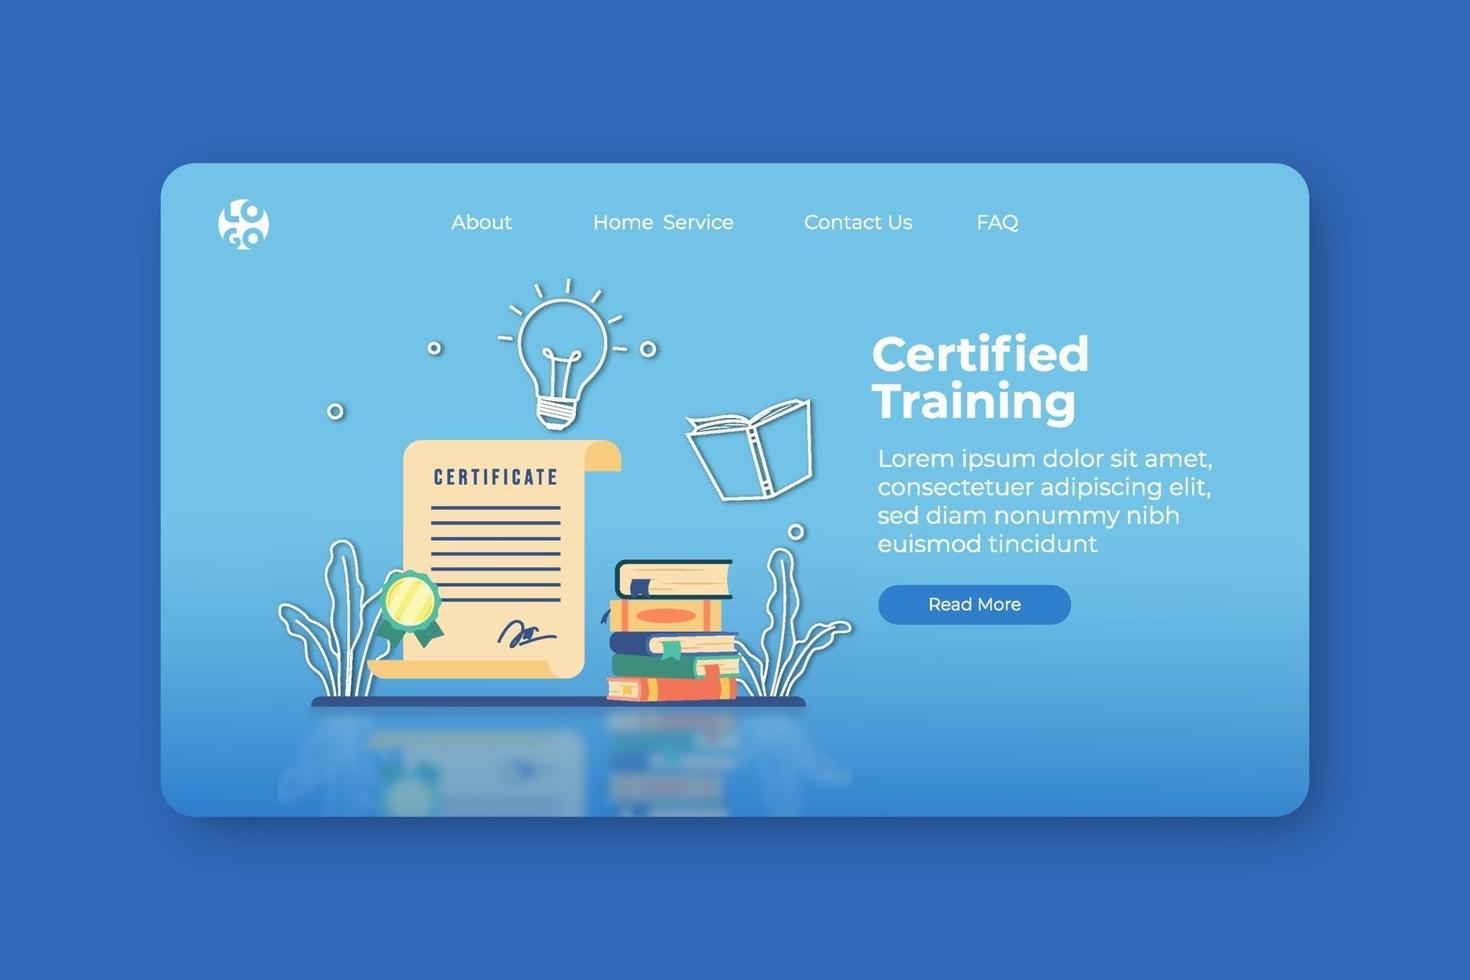 Modern Flat Design Vector Illustration. Certified Training Landing Page and Web Banner Template. Certification, Online Courses, Digital Education, Webinar, E-Learning, Video Tutorial, Online Teaching.